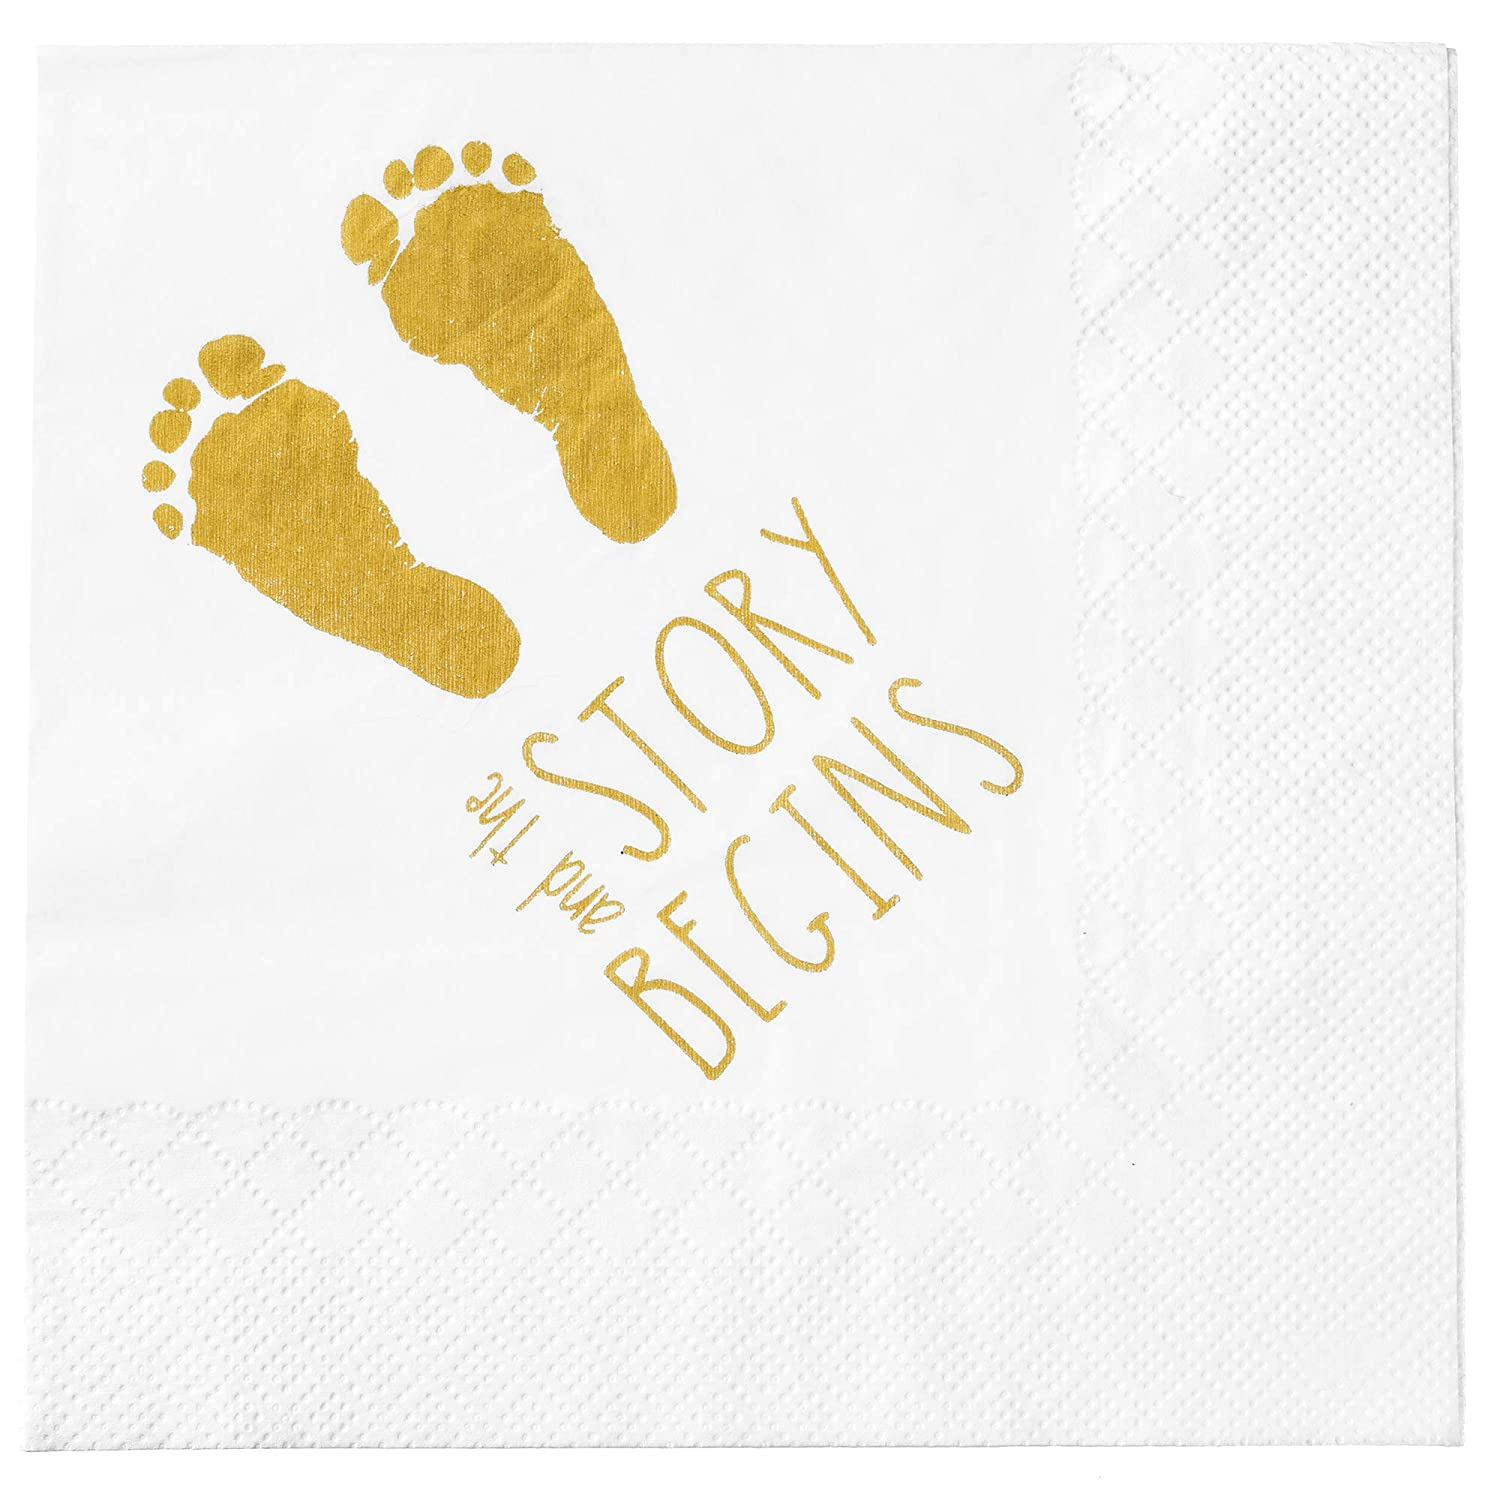 "Baby Shower Napkins -""and The Story Begins"" 100 Quality Pieces - Gender Reveal Gold Napkins - Boy and Girl Baby Shower Decorations Large 6.5 x 6.5 Inch Folded"